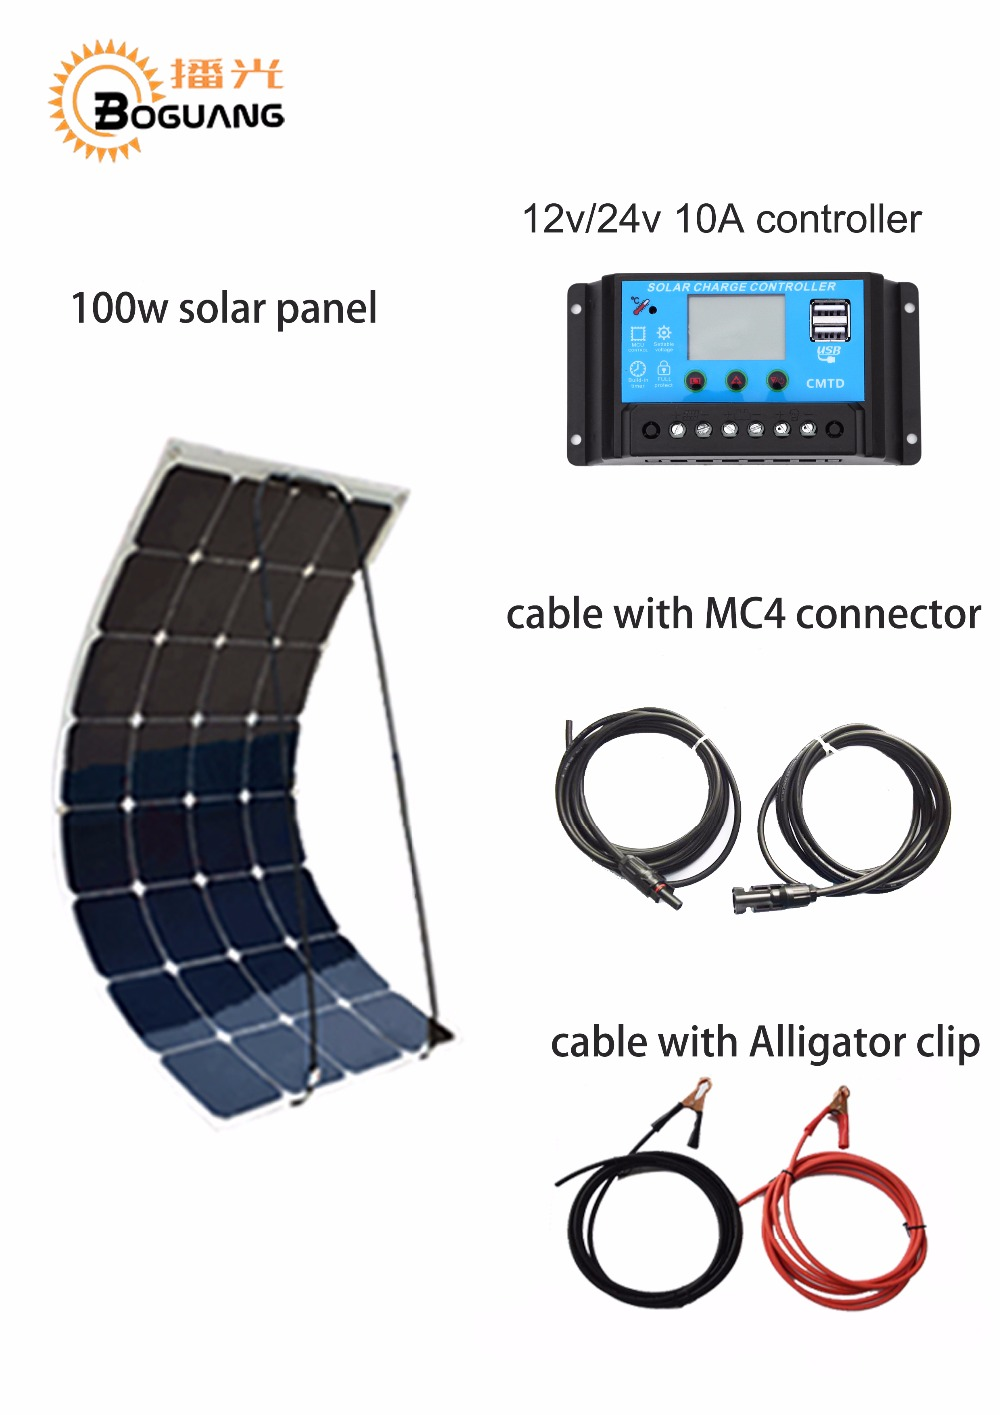 BOGUANG 100W DIY Solar System Kit 100W PV flexible solar panel 12v battery 10A controller MC4 connector RV/Boat Yard power 4pcs 100w flexible solar panel with mppt 30a controller and mc4 y connectors for 12v battery solar charger houseuse solar kit